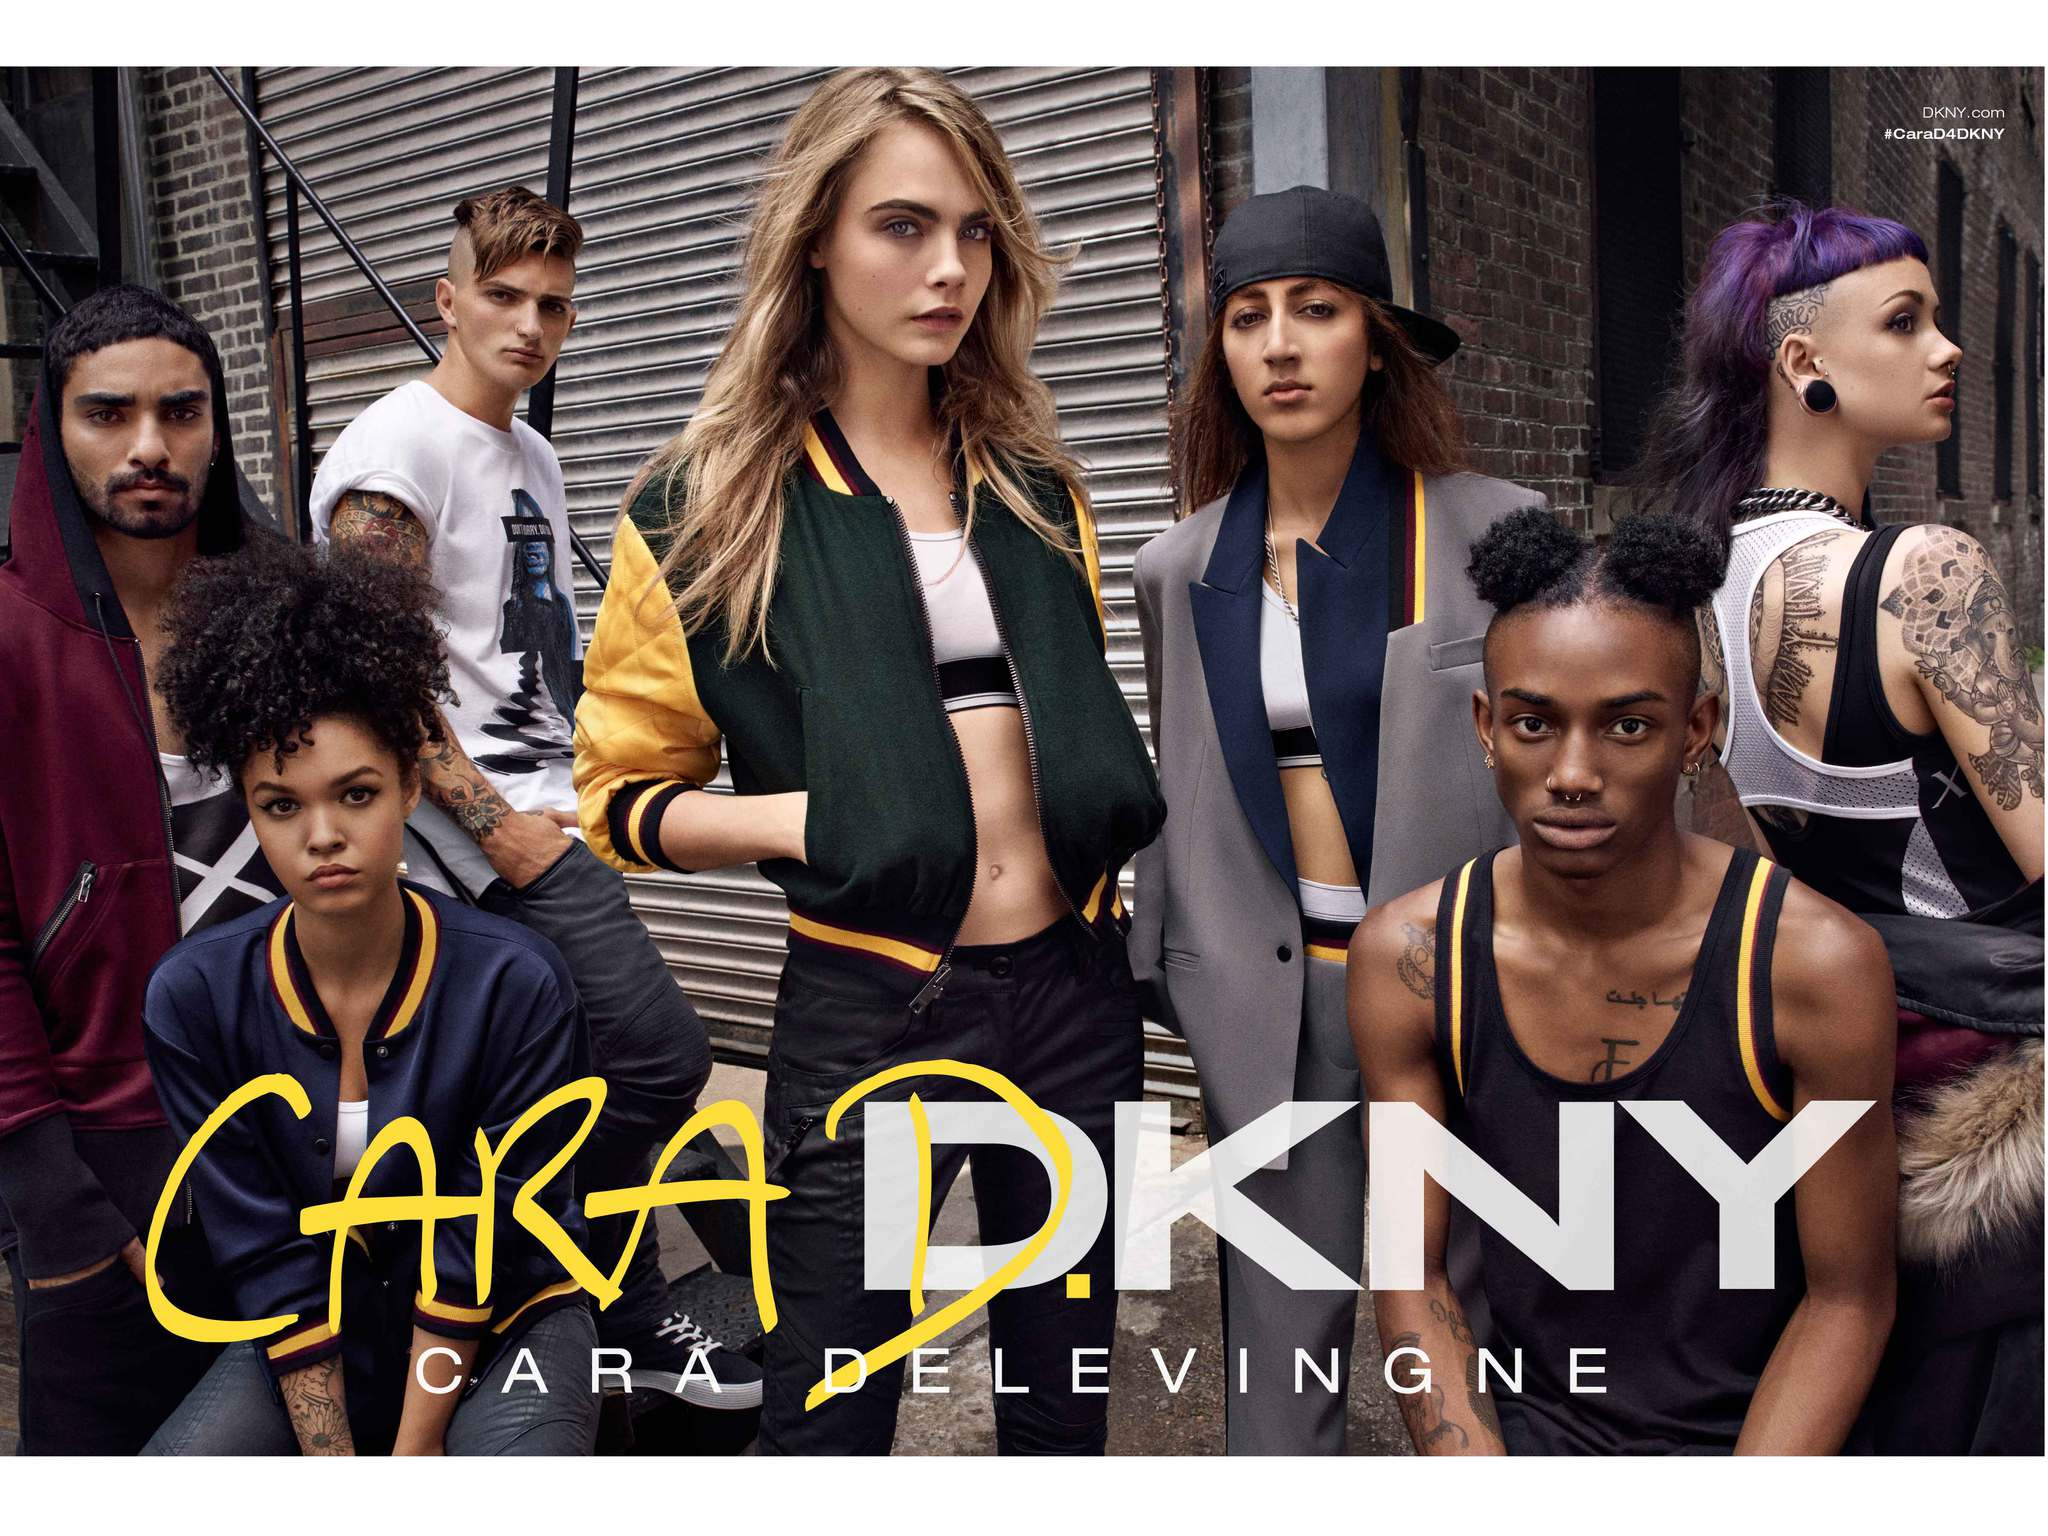 The Cara Delevingne for DKNY Collection Is Here